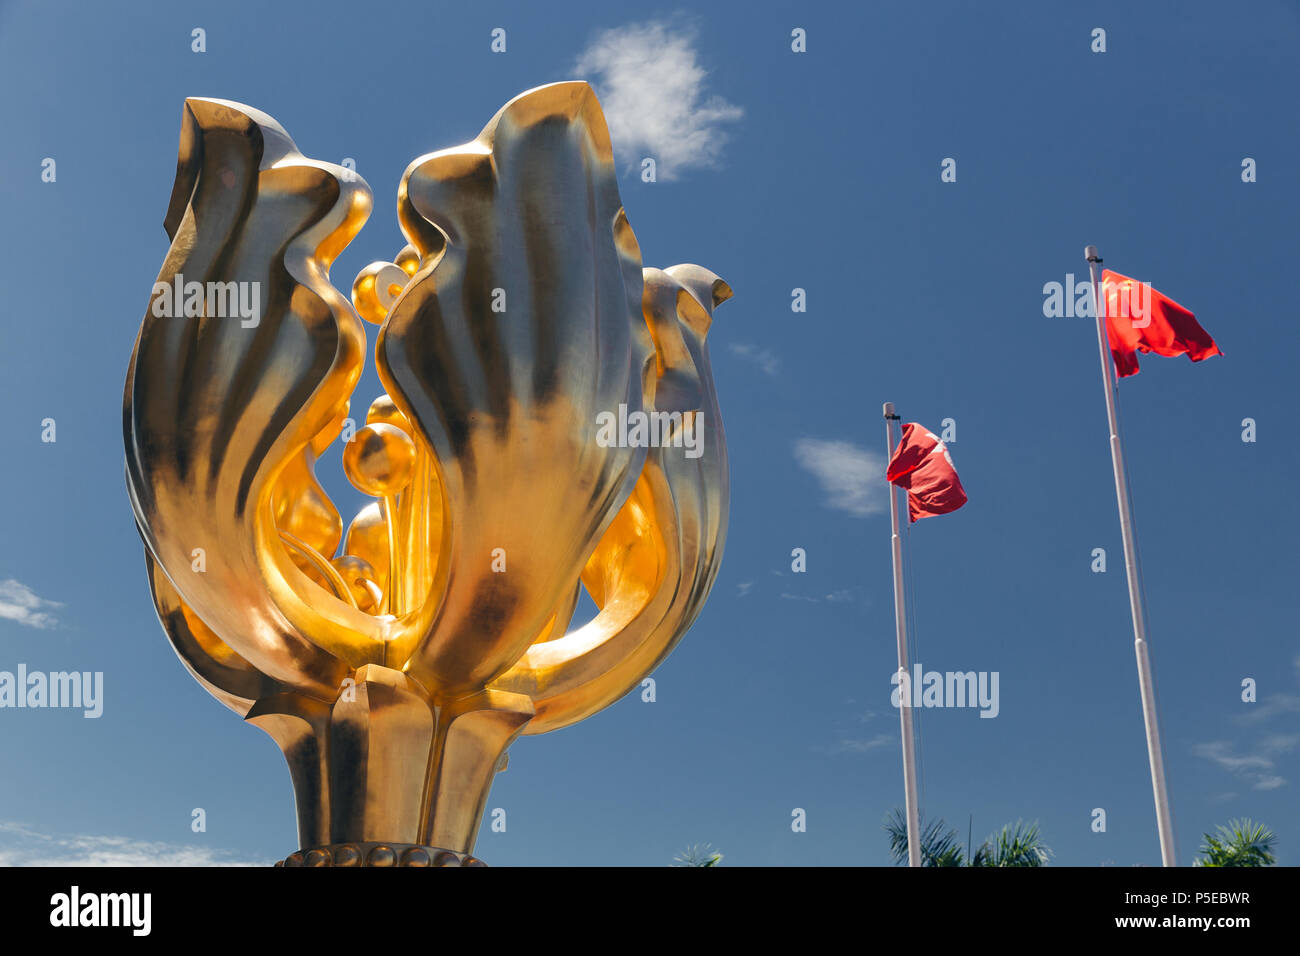 HONG KONG - MAY 29, 2018: Golden Bauhinia Square flower monument - Stock Image